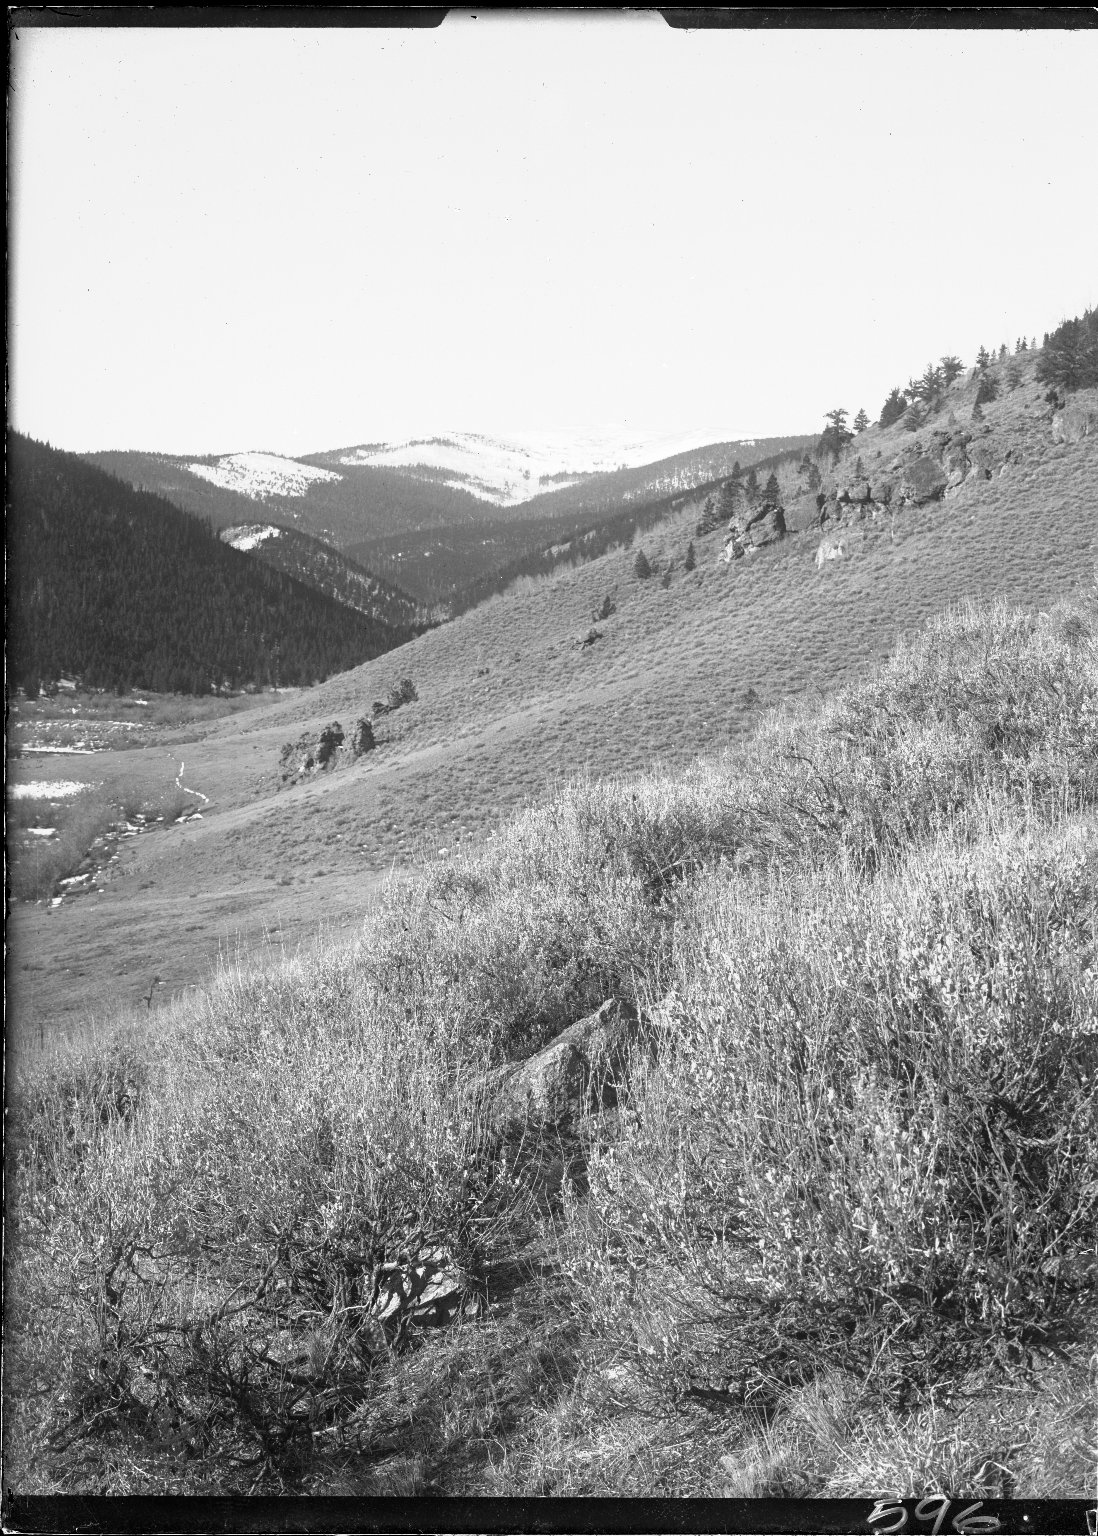 Sagebrush hillside